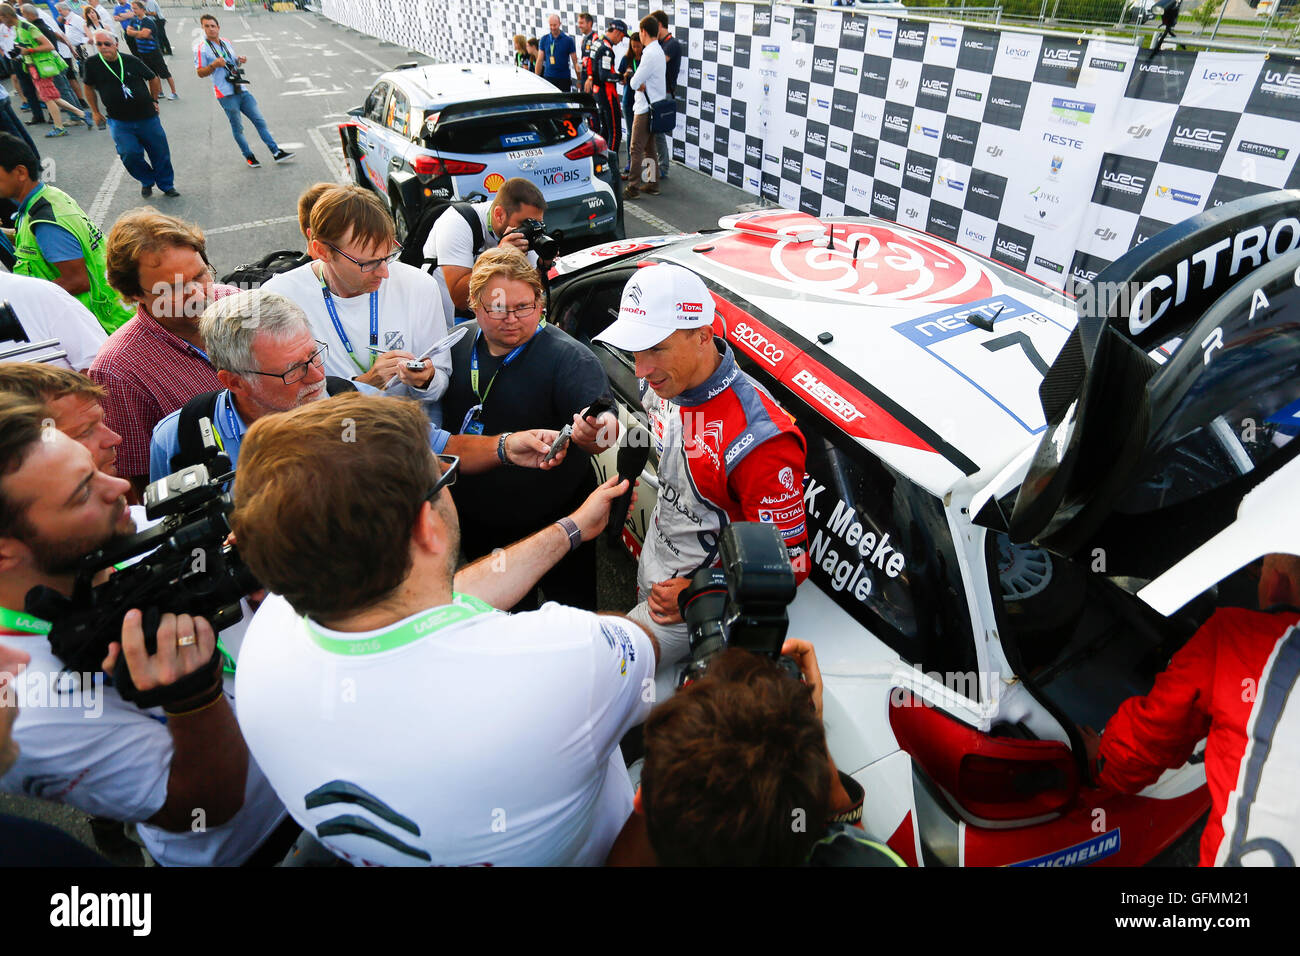 Finland. 31st July, 2016. WRC Rally of Finland, final day. Northern Ireland's Kris Meeke and Paul Nagle (GB) - Stock Image